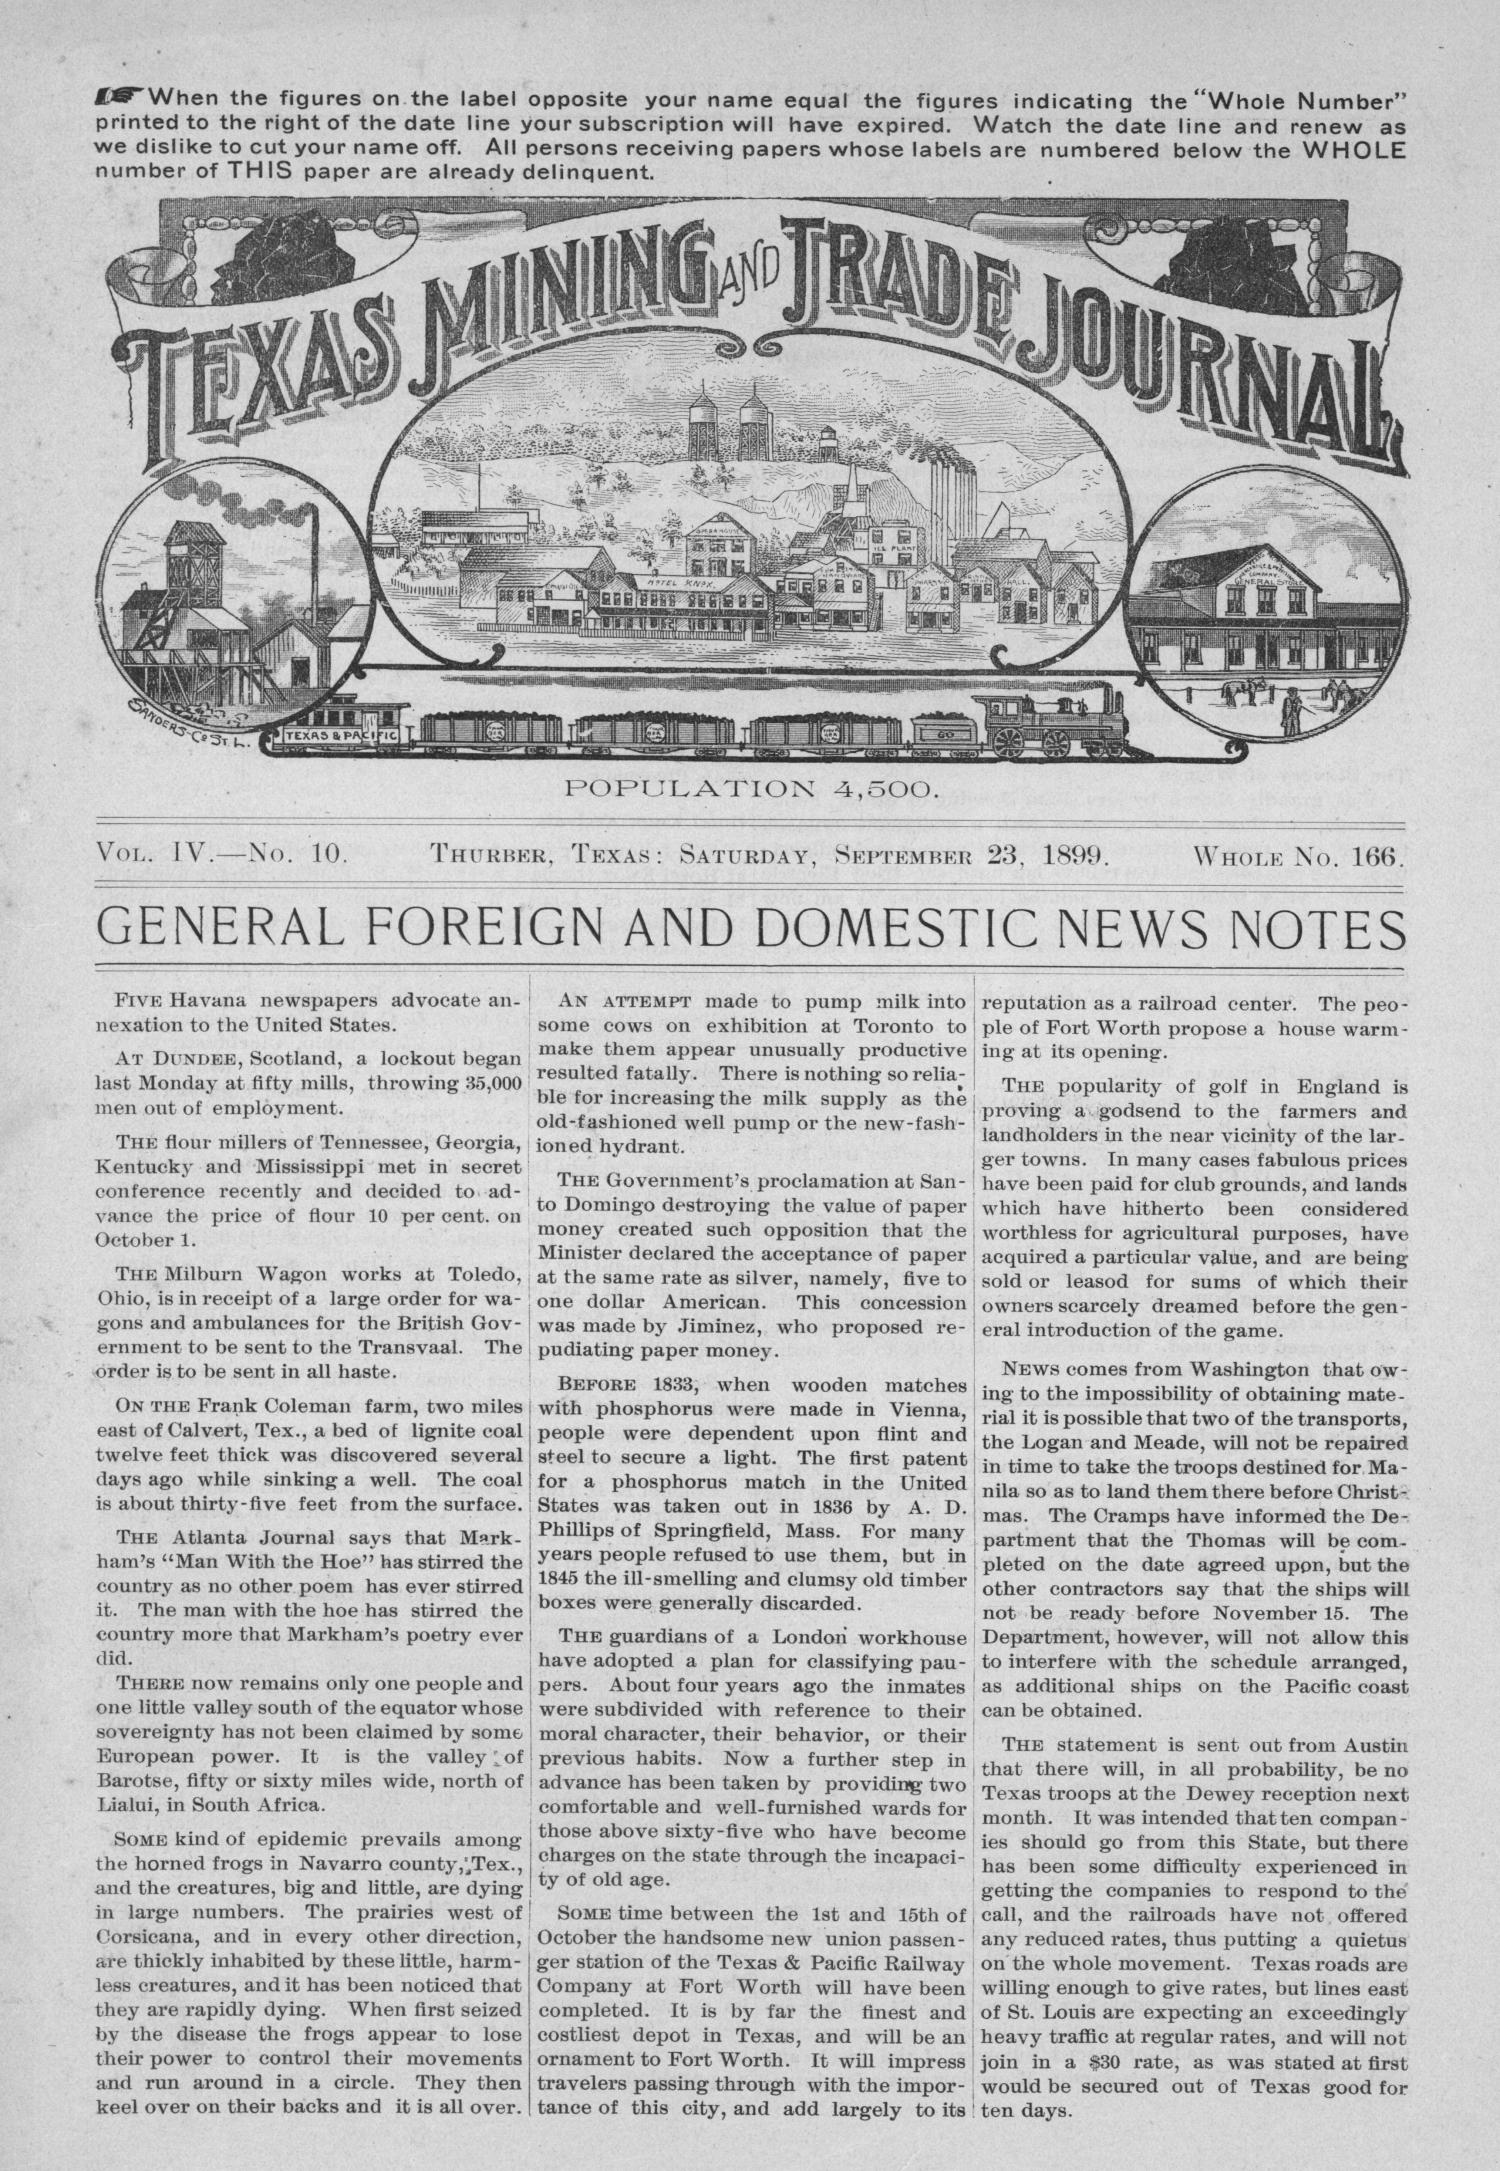 Texas Mining and Trade Journal, Volume 4, Number 10, Saturday, September 23, 1899                                                                                                      1